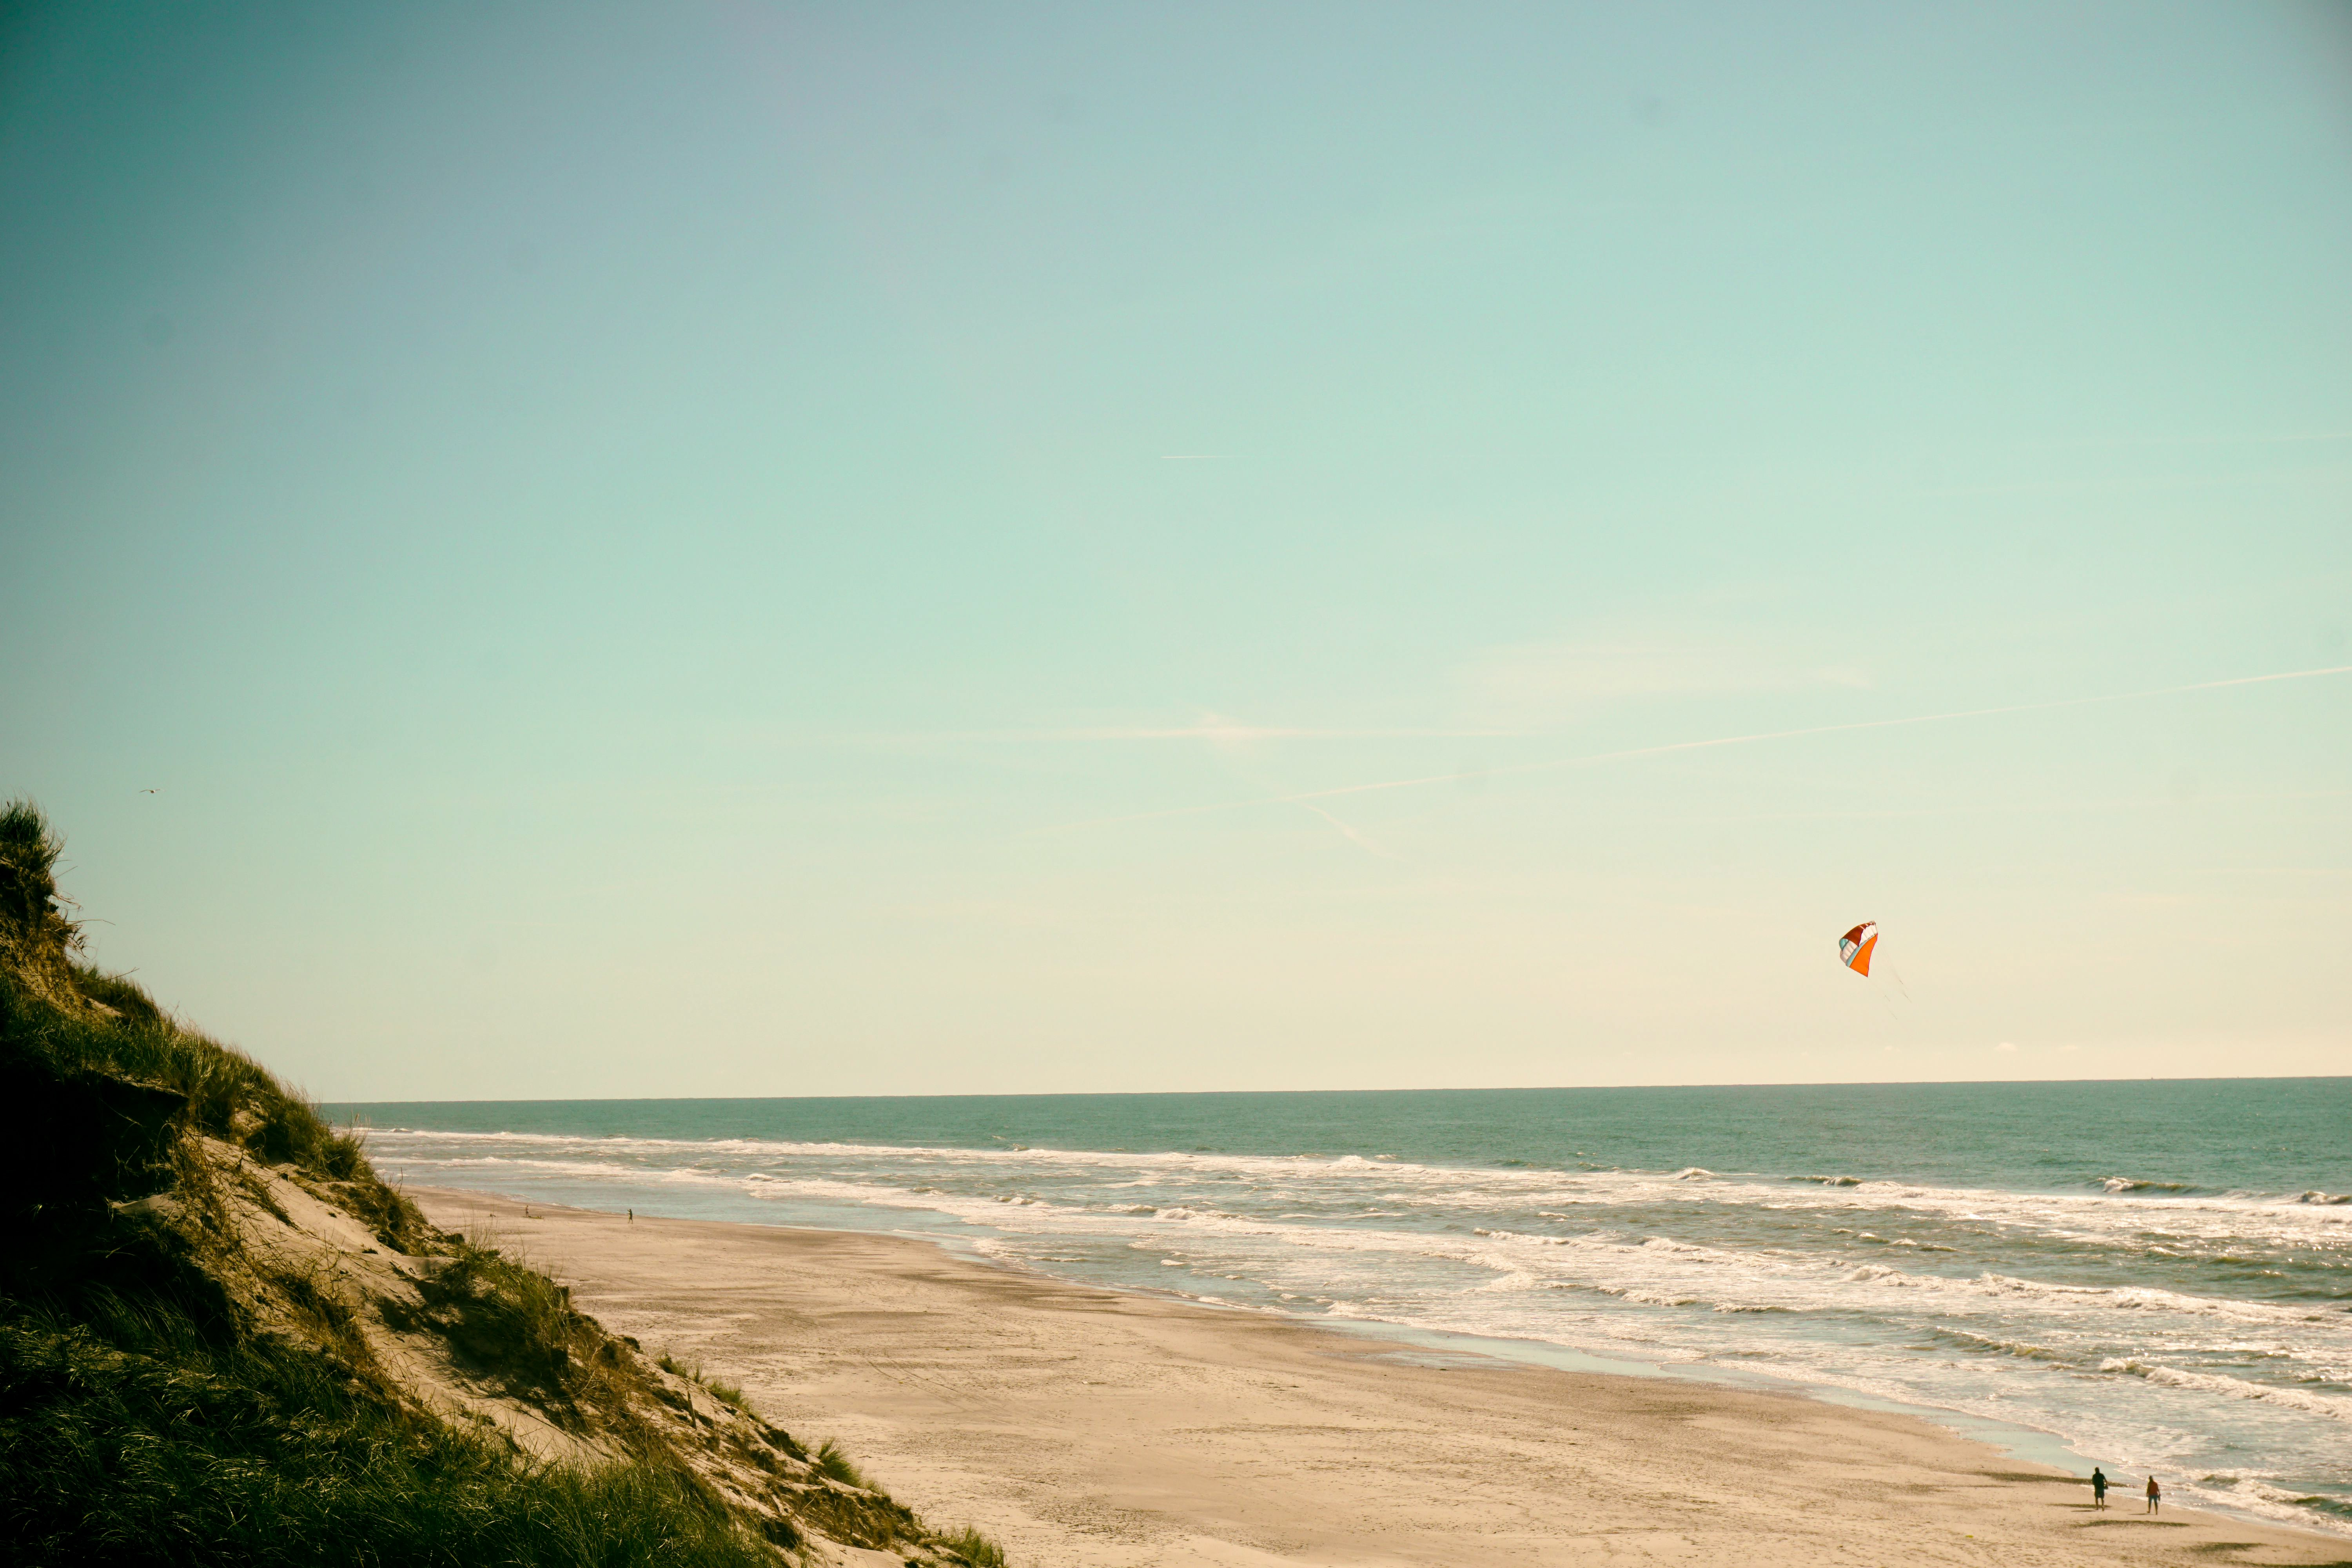 People on the andy ocean coastline with parafoil kite